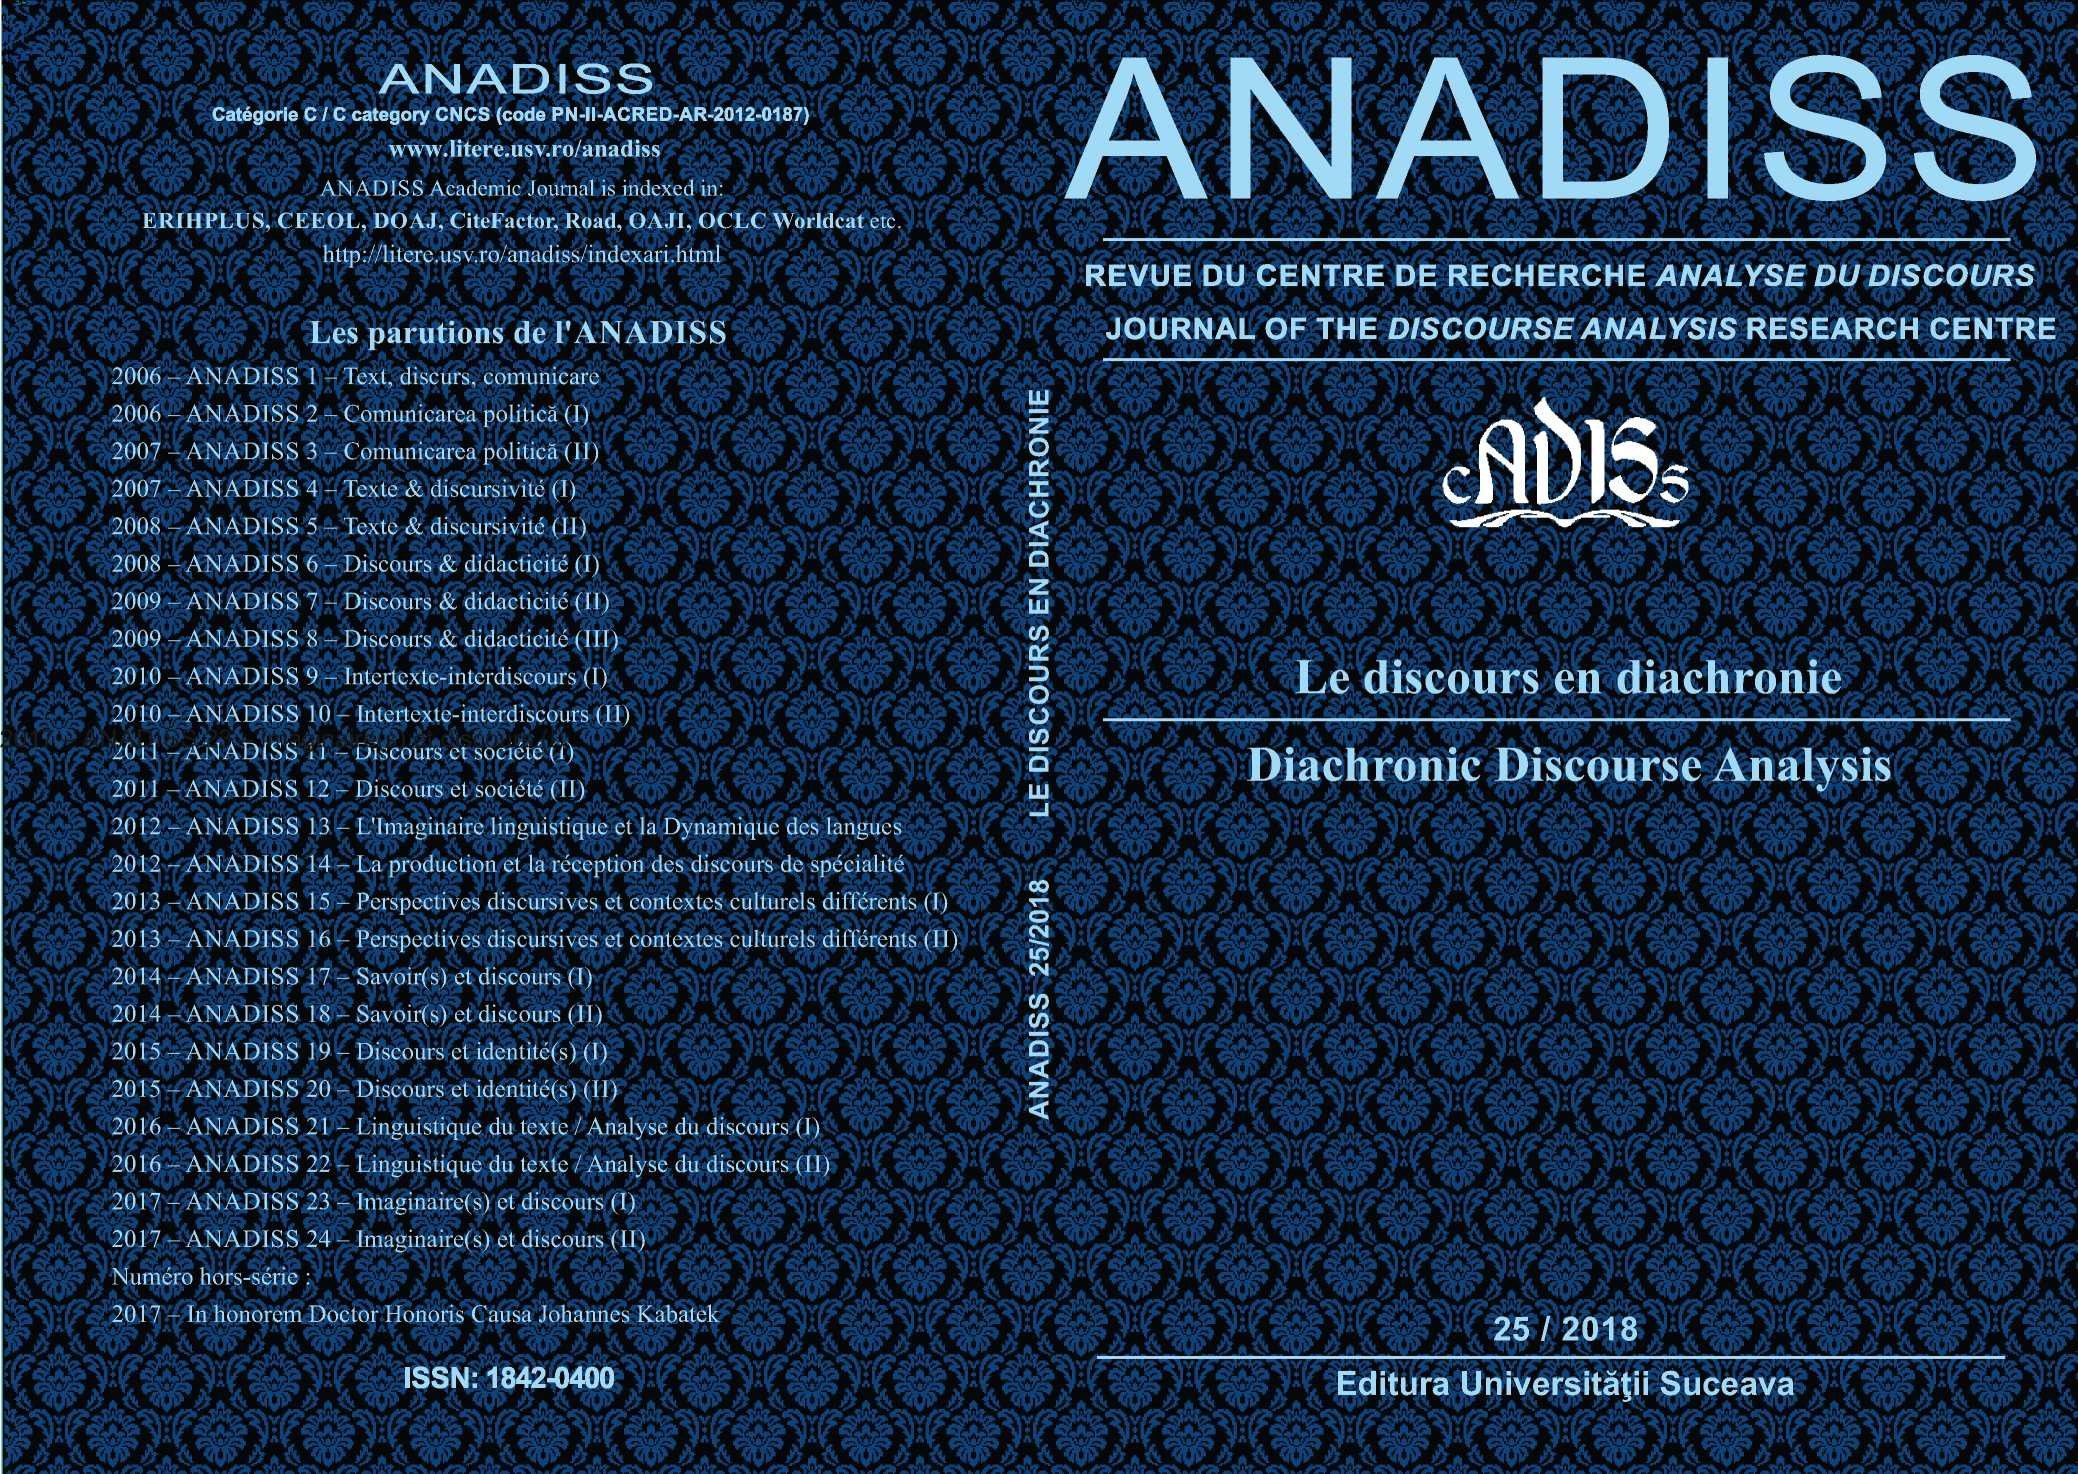 ANADISS Cover Image